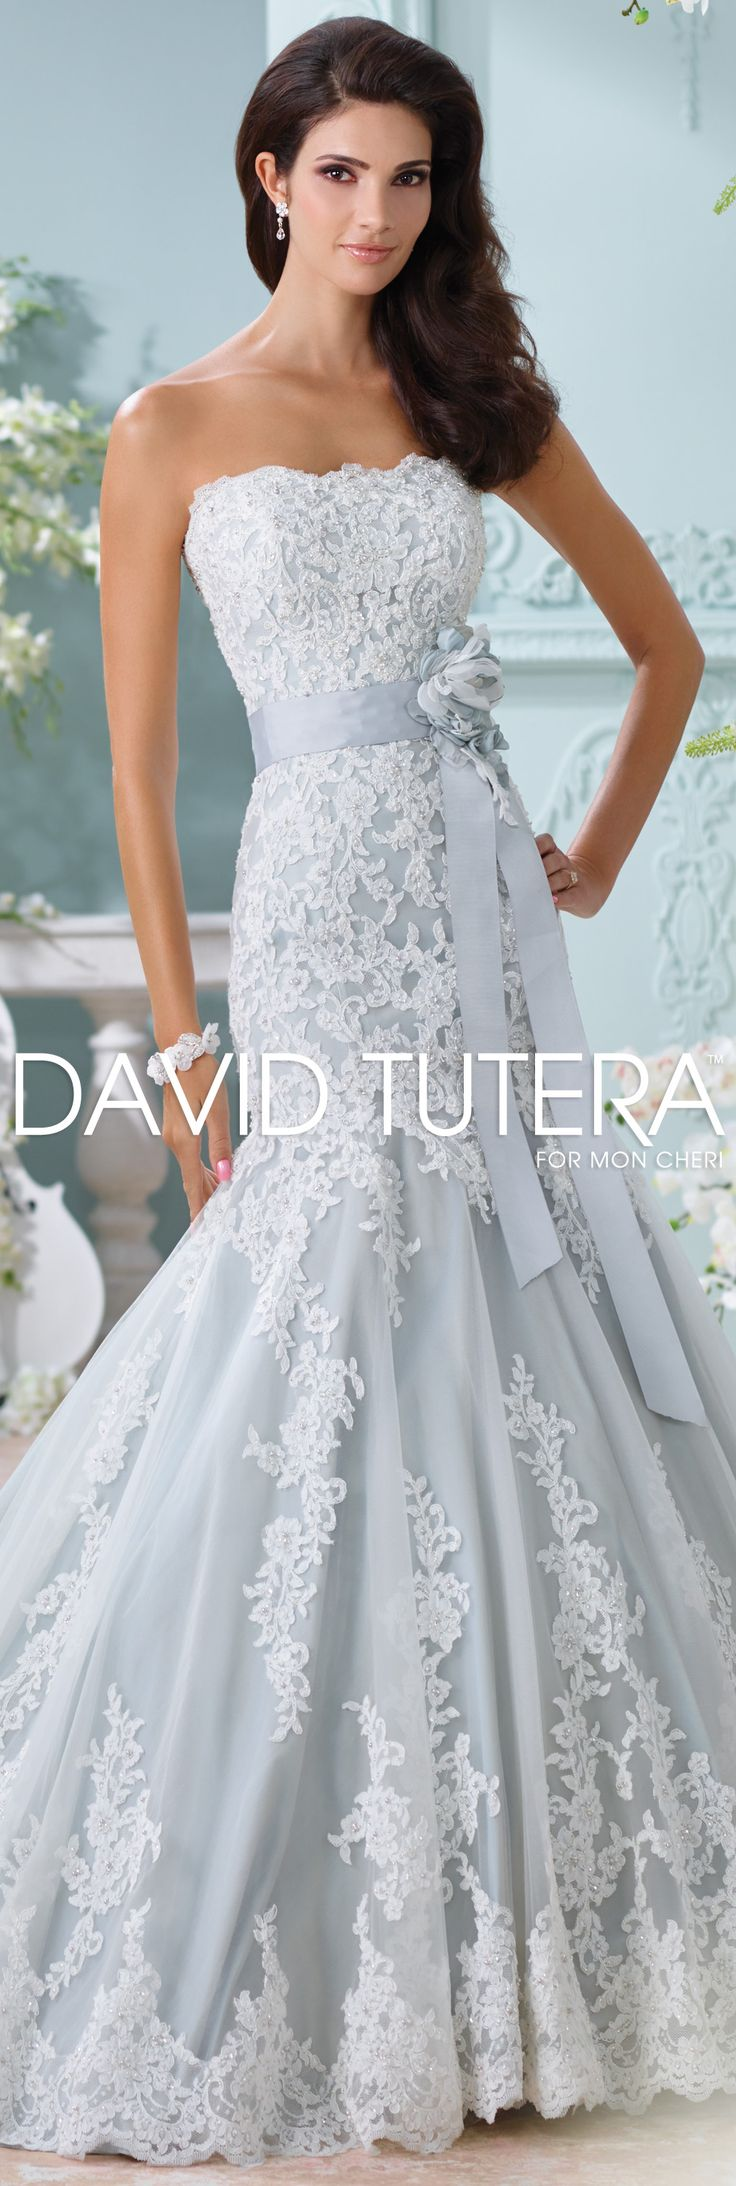 The David Tutera for Mon Cheri Spring 2016 Wedding Gown Collection - Style No. 116225 Thea